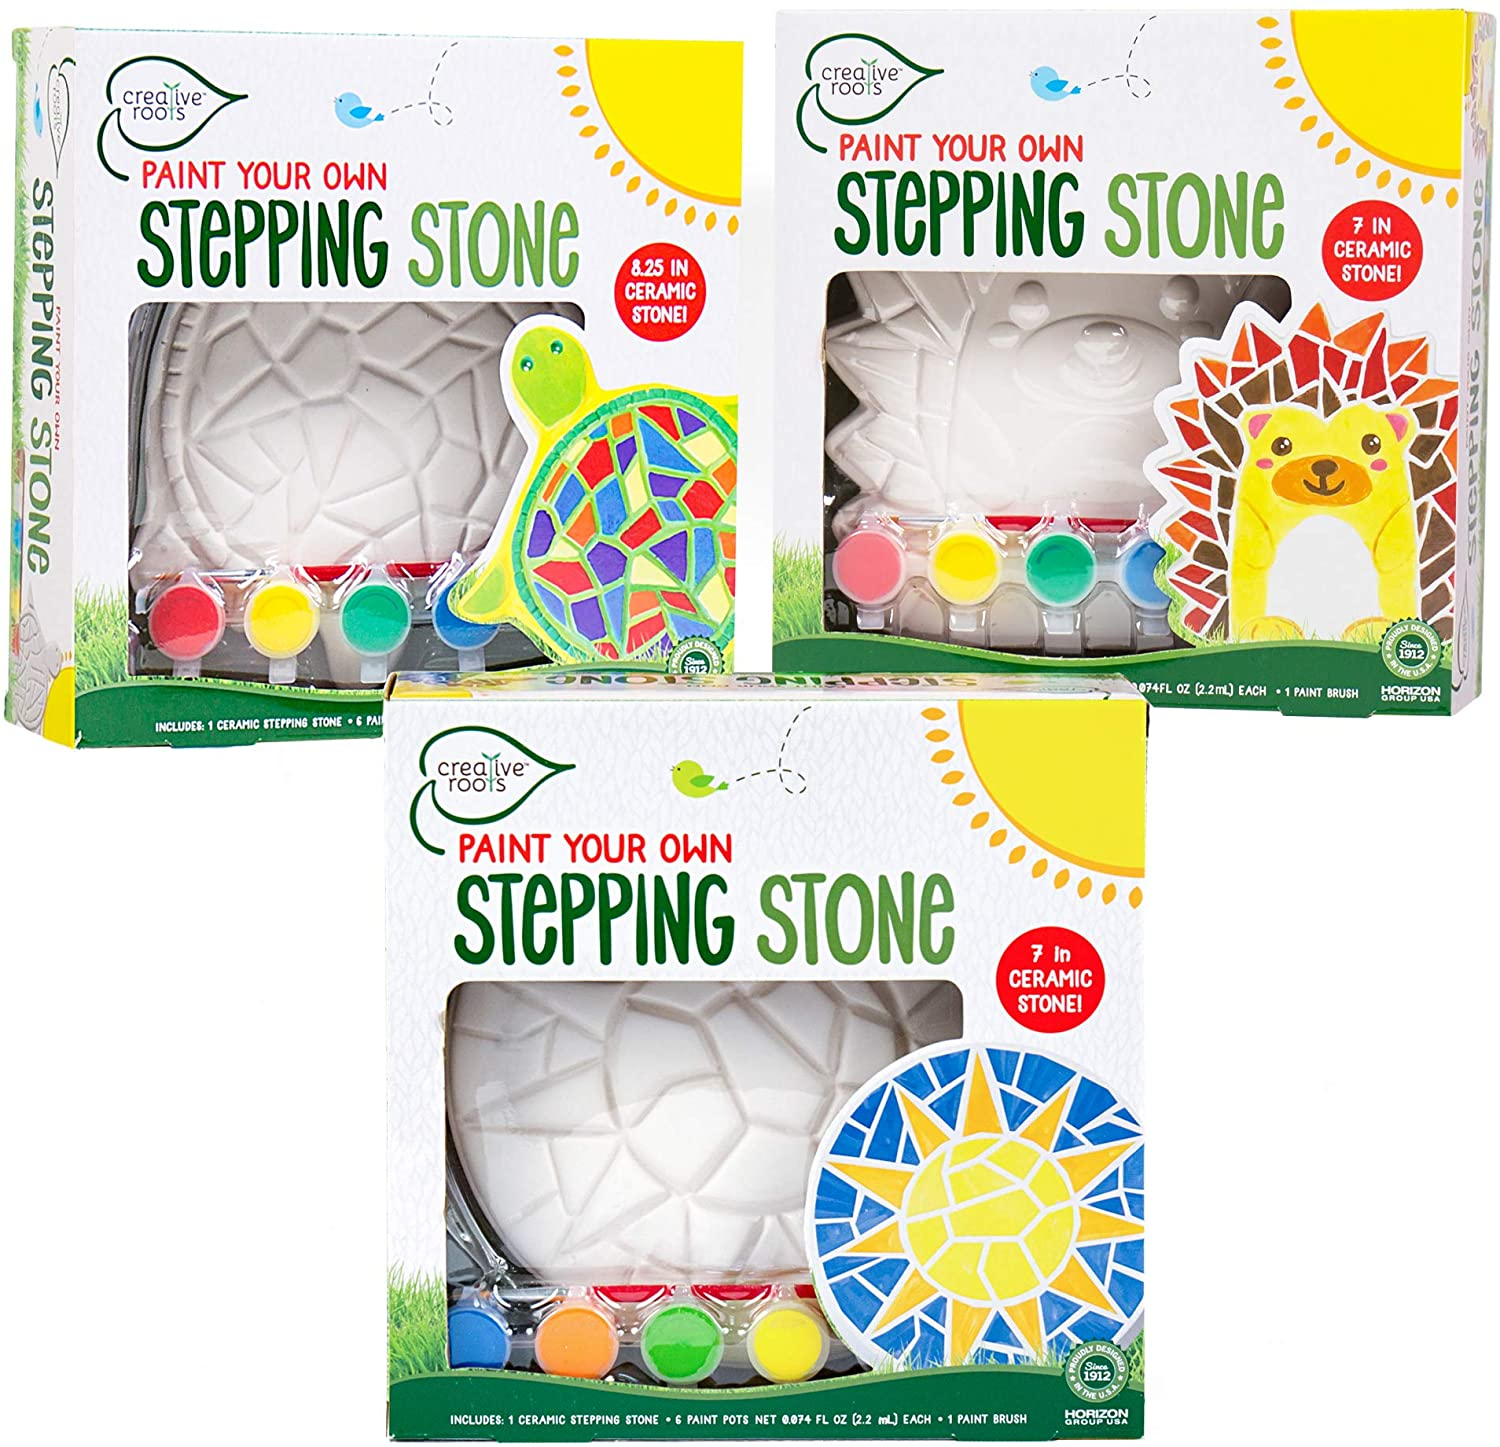 Creative Roots Paint Your Own Stepping Stones Multipack with Turtle, Hedgehog & Sun Stepping Stones by Horizon Group USA